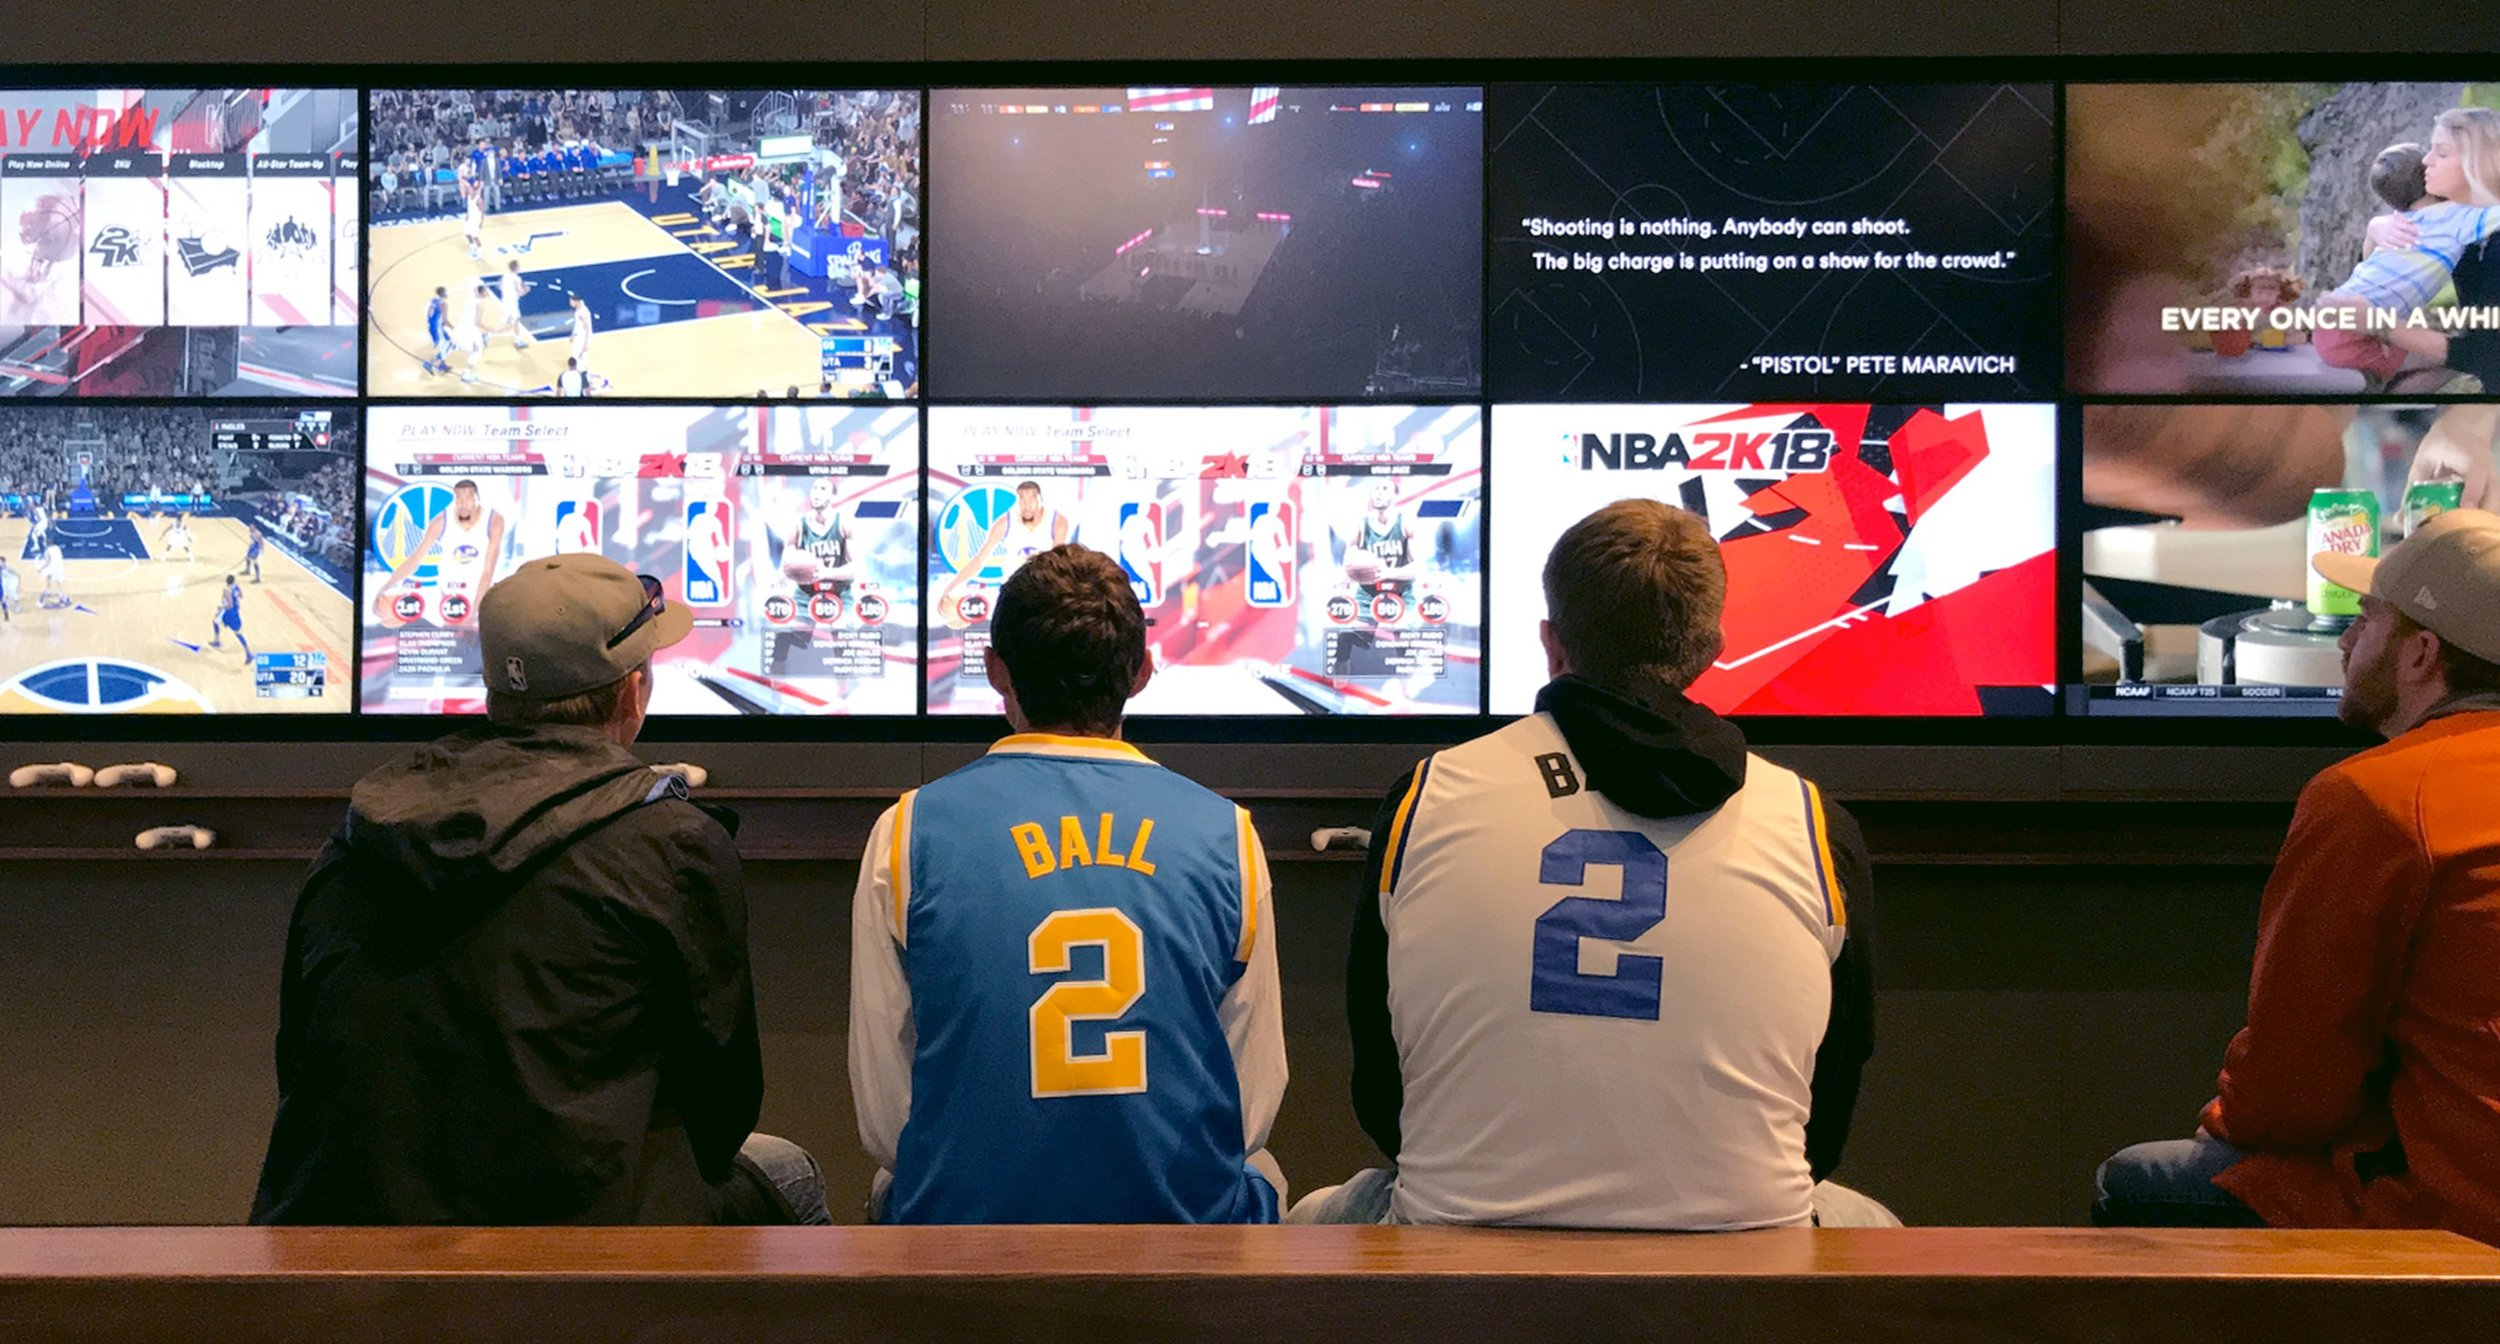 Photo of fans in the Home Court lounge watching sports